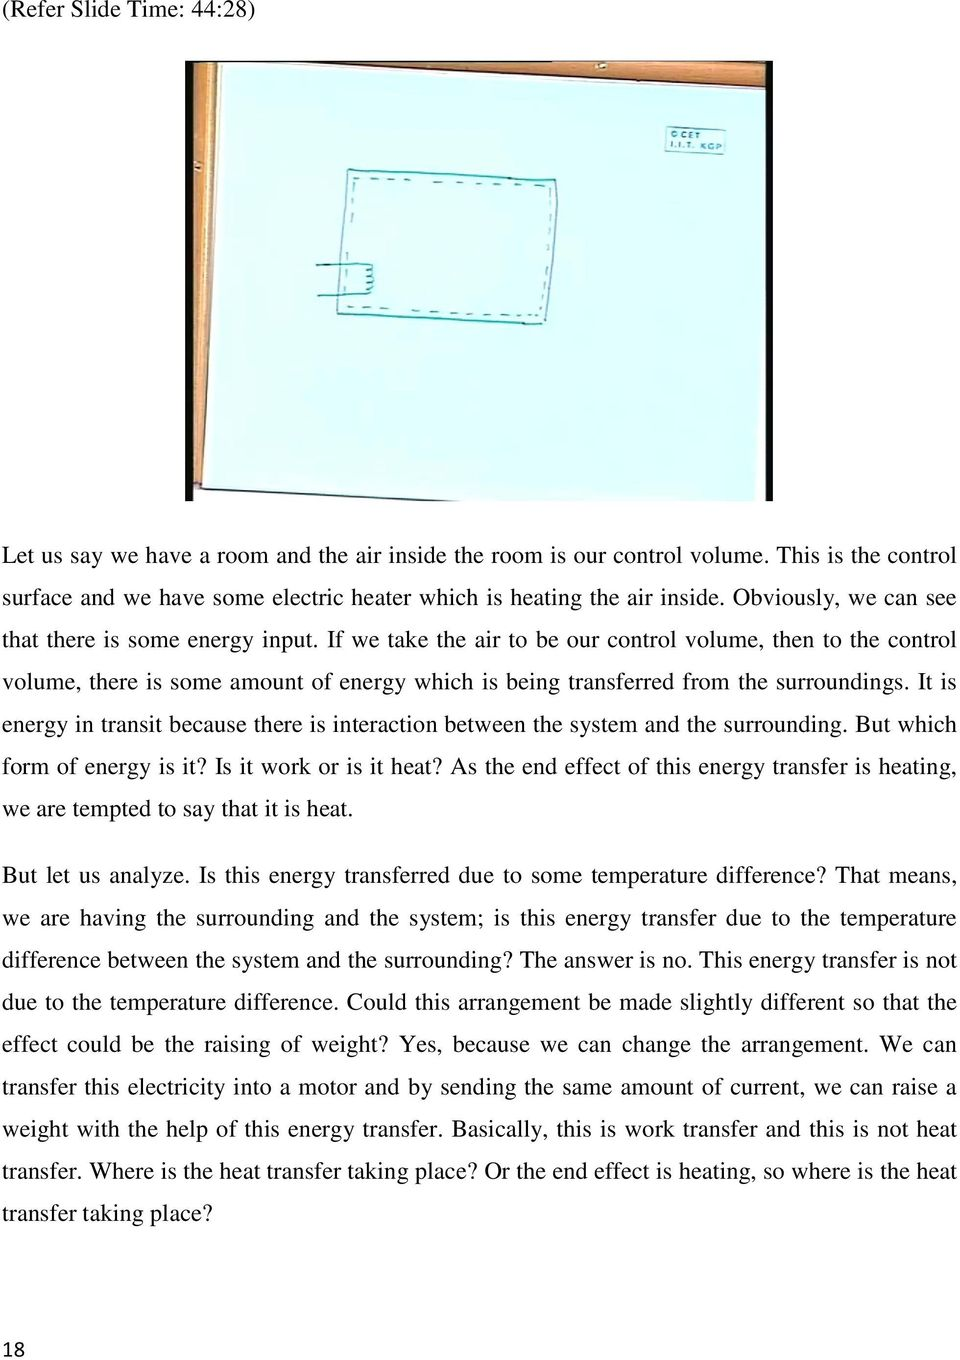 If we take the air to be our control volume, then to the control volume, there is some amount of energy which is being transferred from the surroundings.